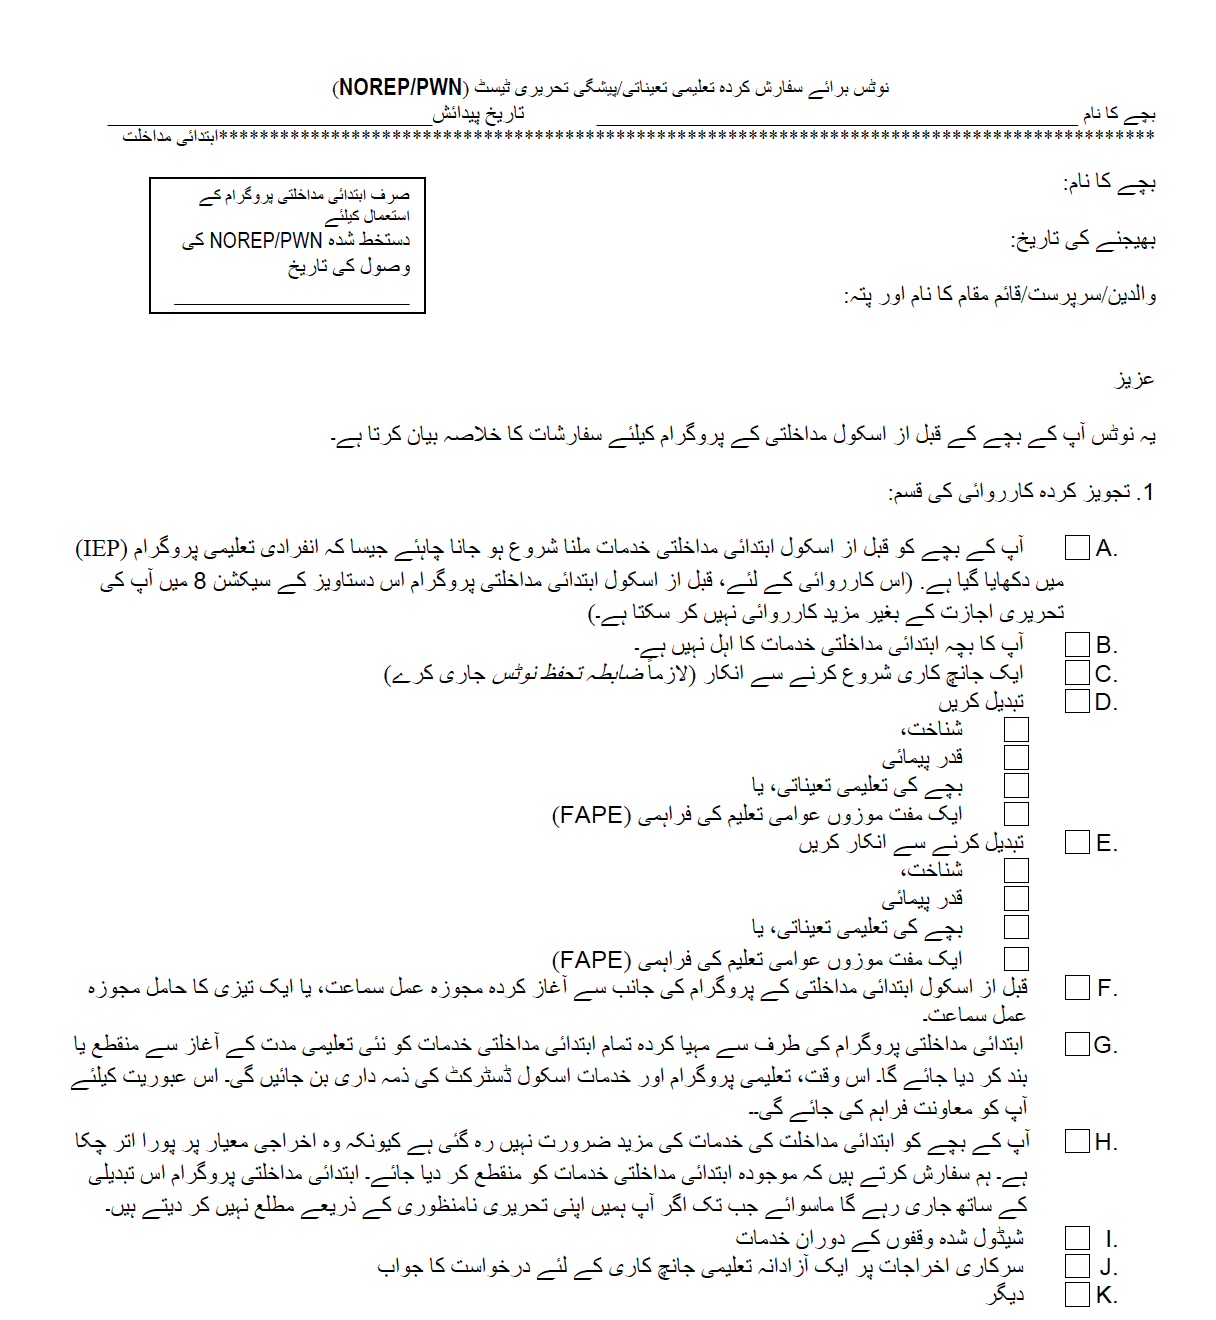 NOTICE OF RECOMMENDED EDUCATIONAL PLACEMENT/PRIOR WRITTEN NOTICE (NOREP/PWN) - Preschool Early Intervention Urdu